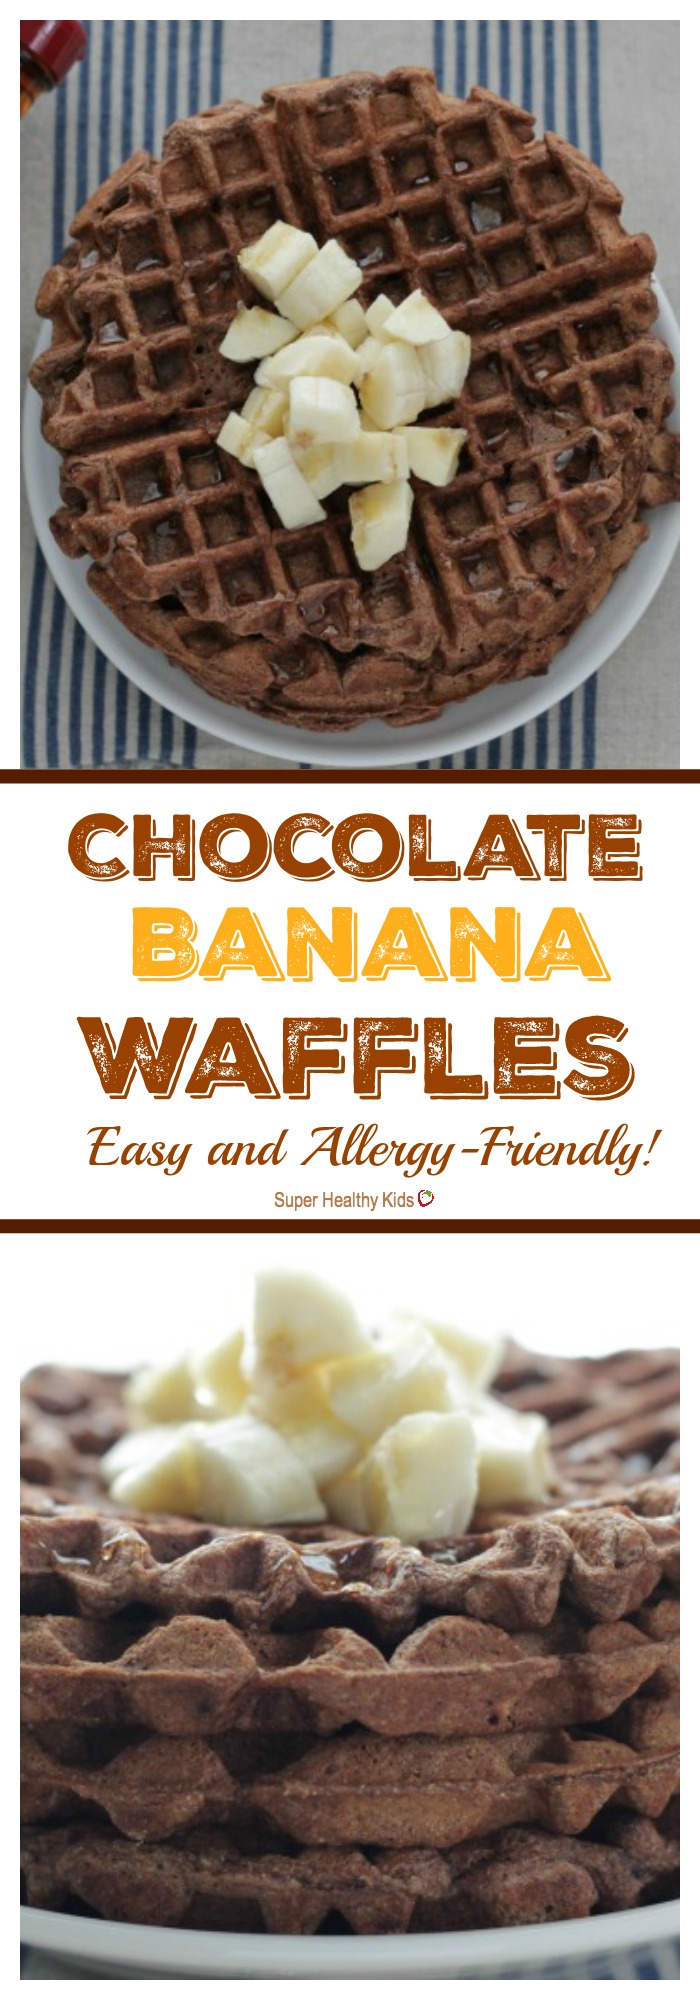 Chocolate Banana Waffles: Easy and Allergy-Friendly!   Healthy ...